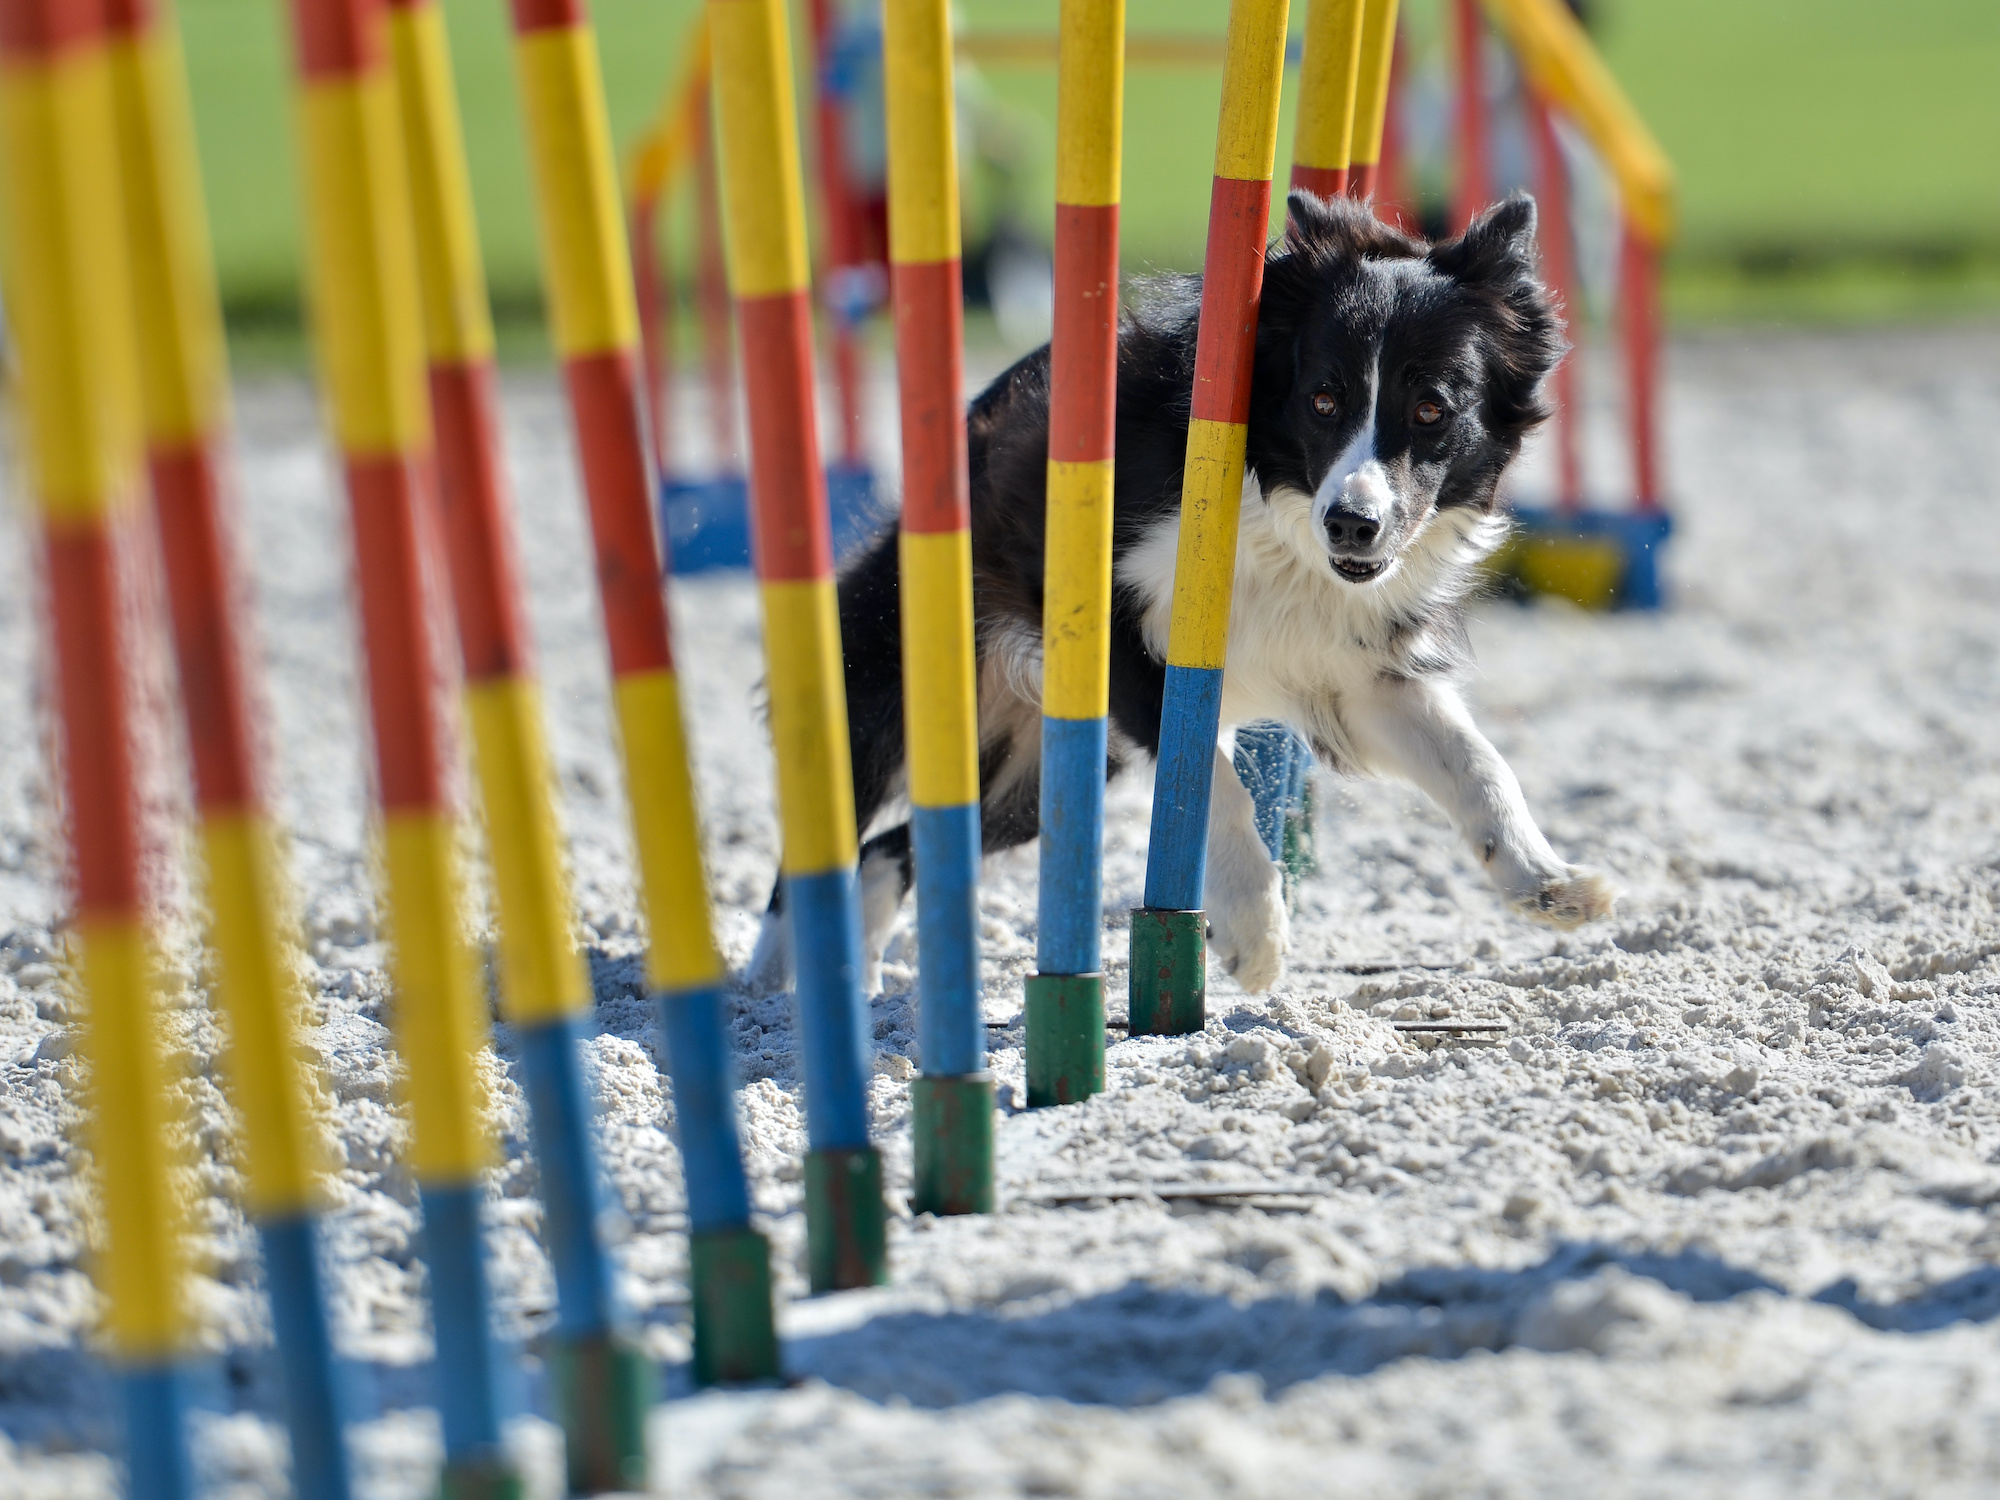 Driver doing donuts in dog park damages agility equipment